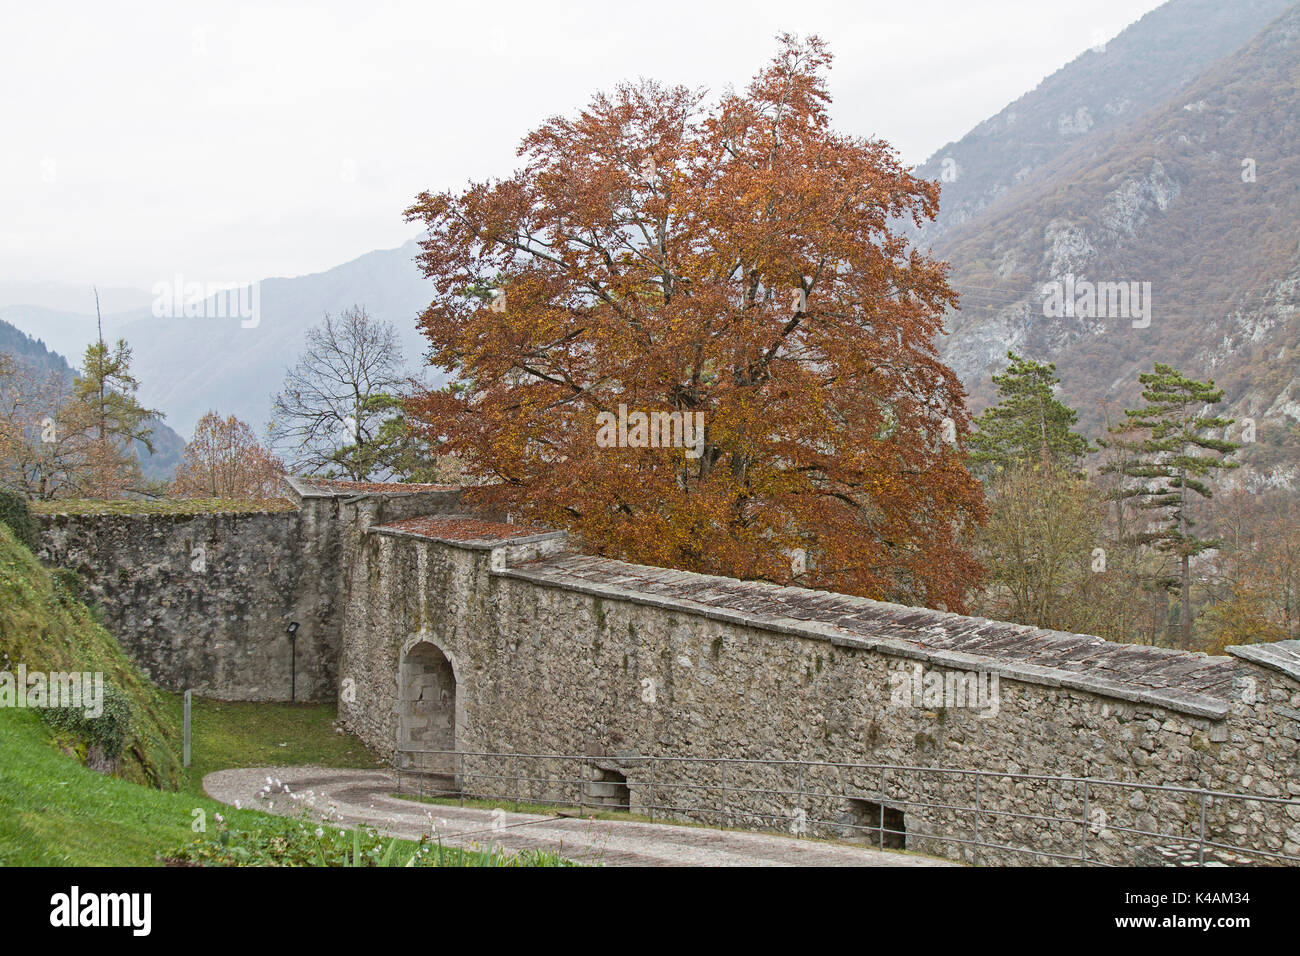 Ascent To Castello Di Stenico On A Dull Autumn Day - Stock Image